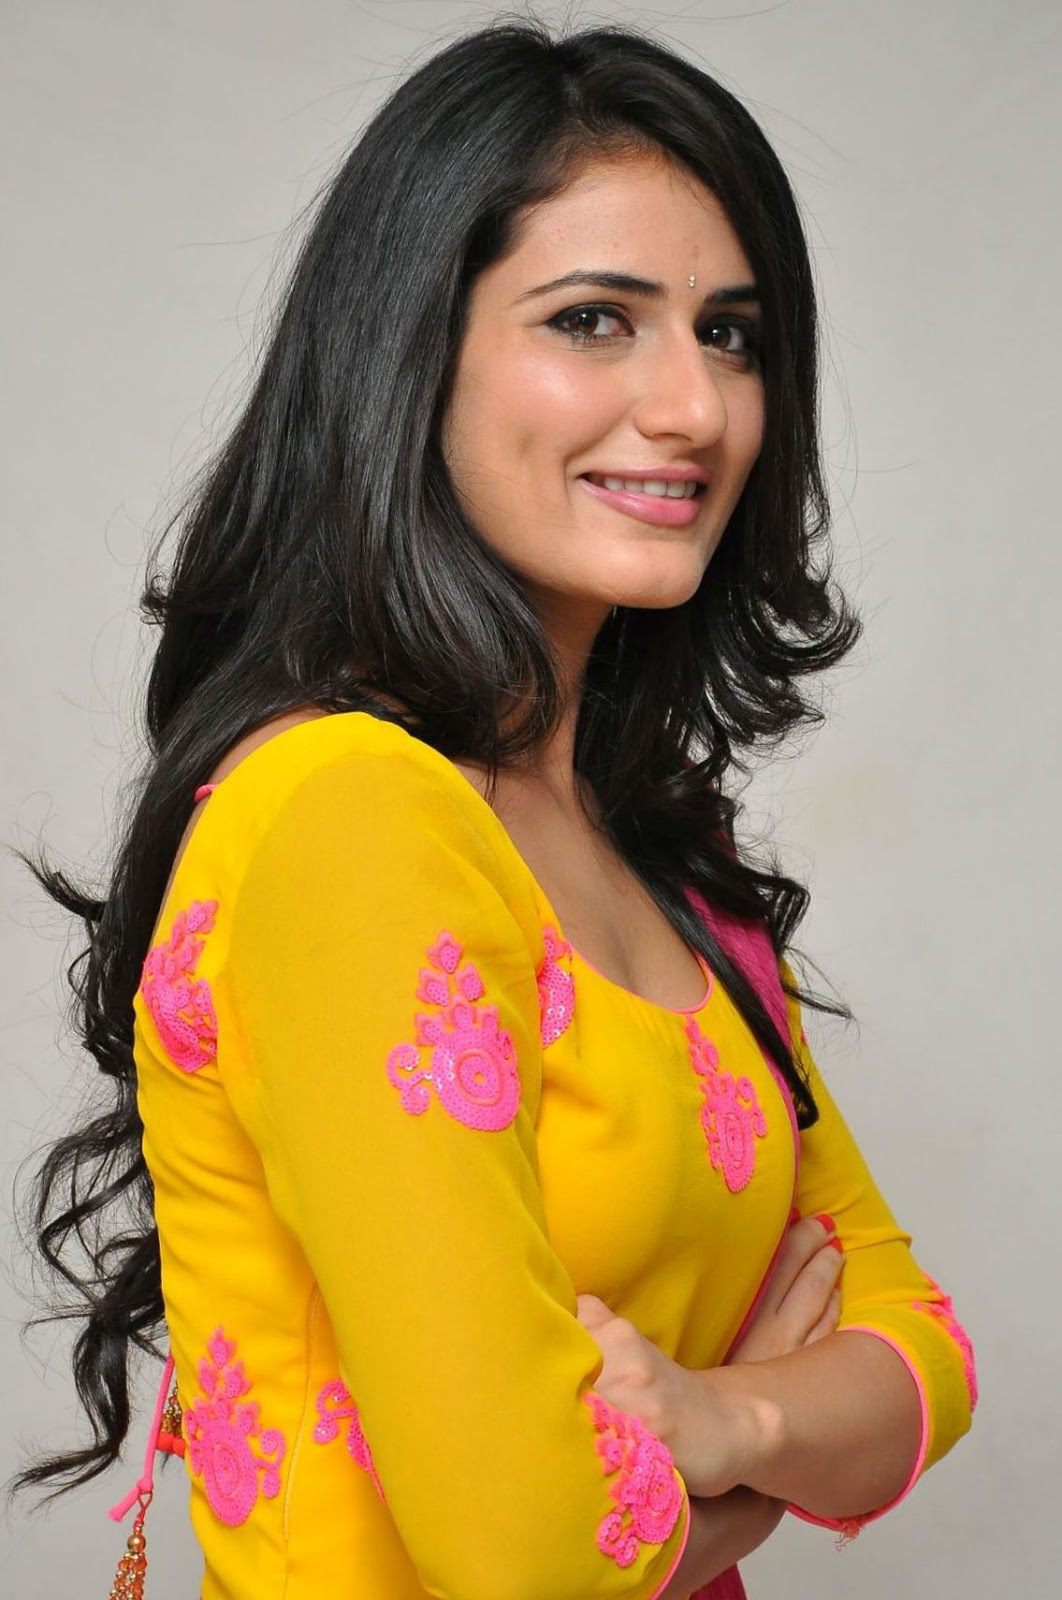 actress sana telugu heroine indian films south film acts mainly appeared advertisements several career started she